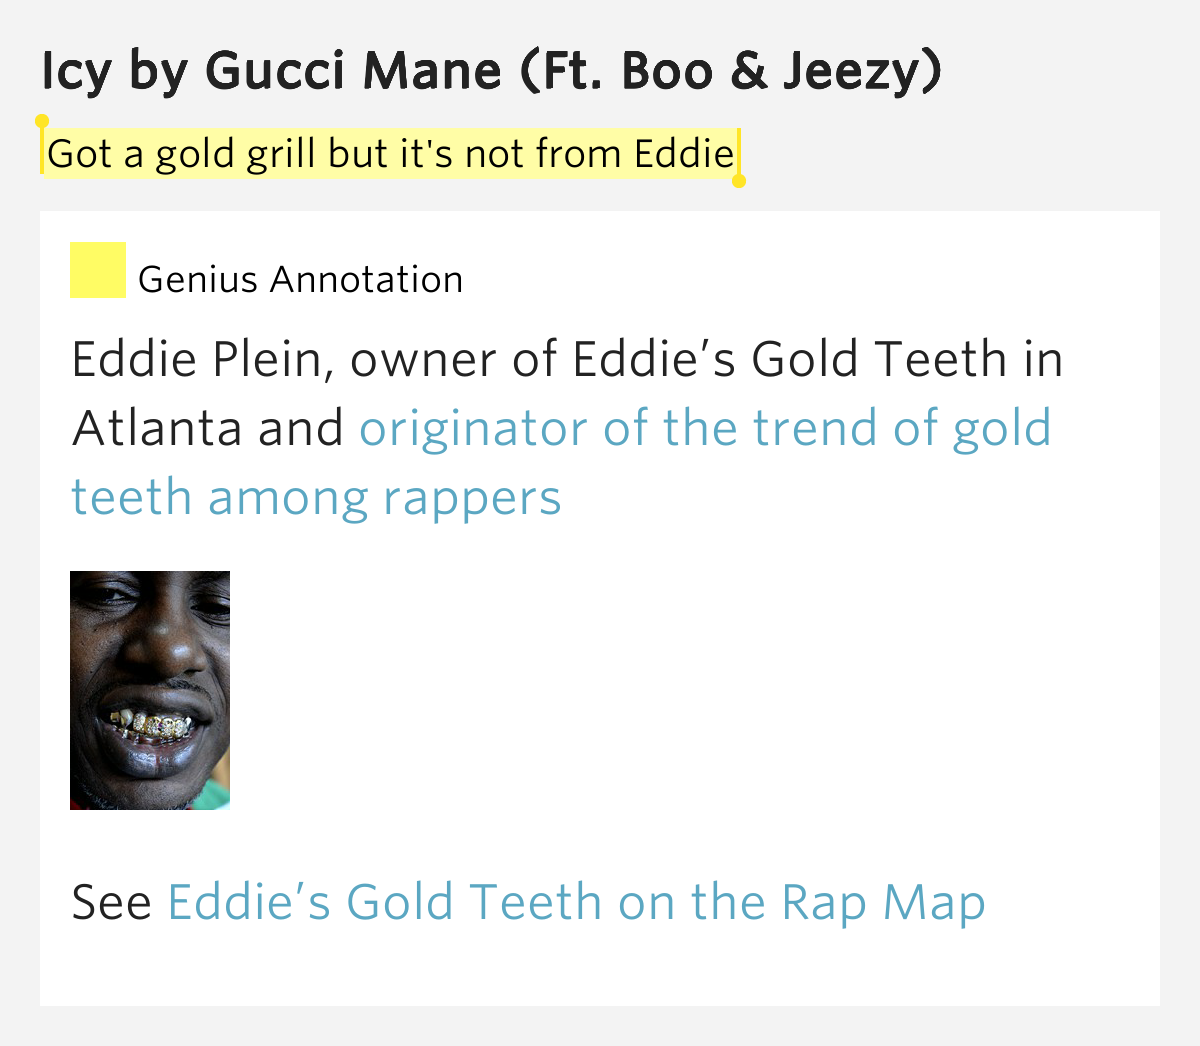 Got a gold grill but it's not from Eddie – Icy Lyrics Meaning